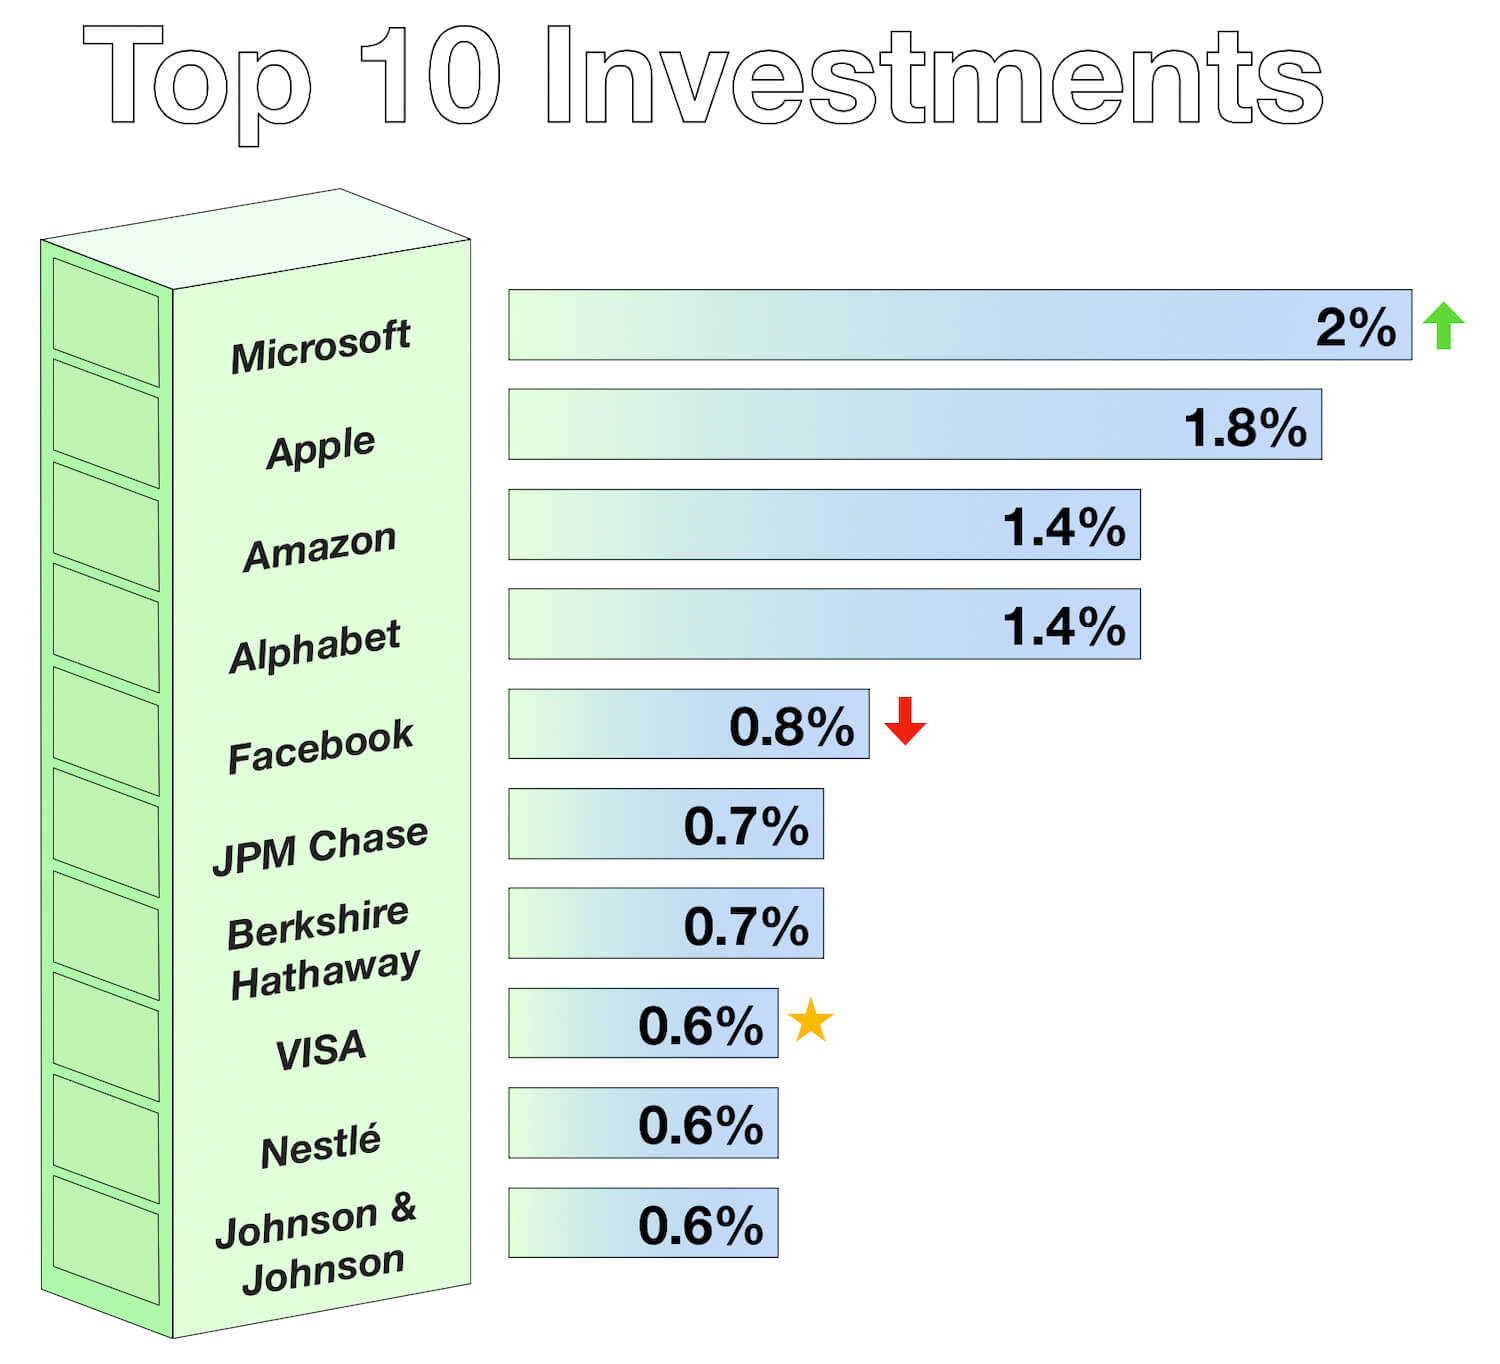 September 2019 - Top 10 InvestmentS